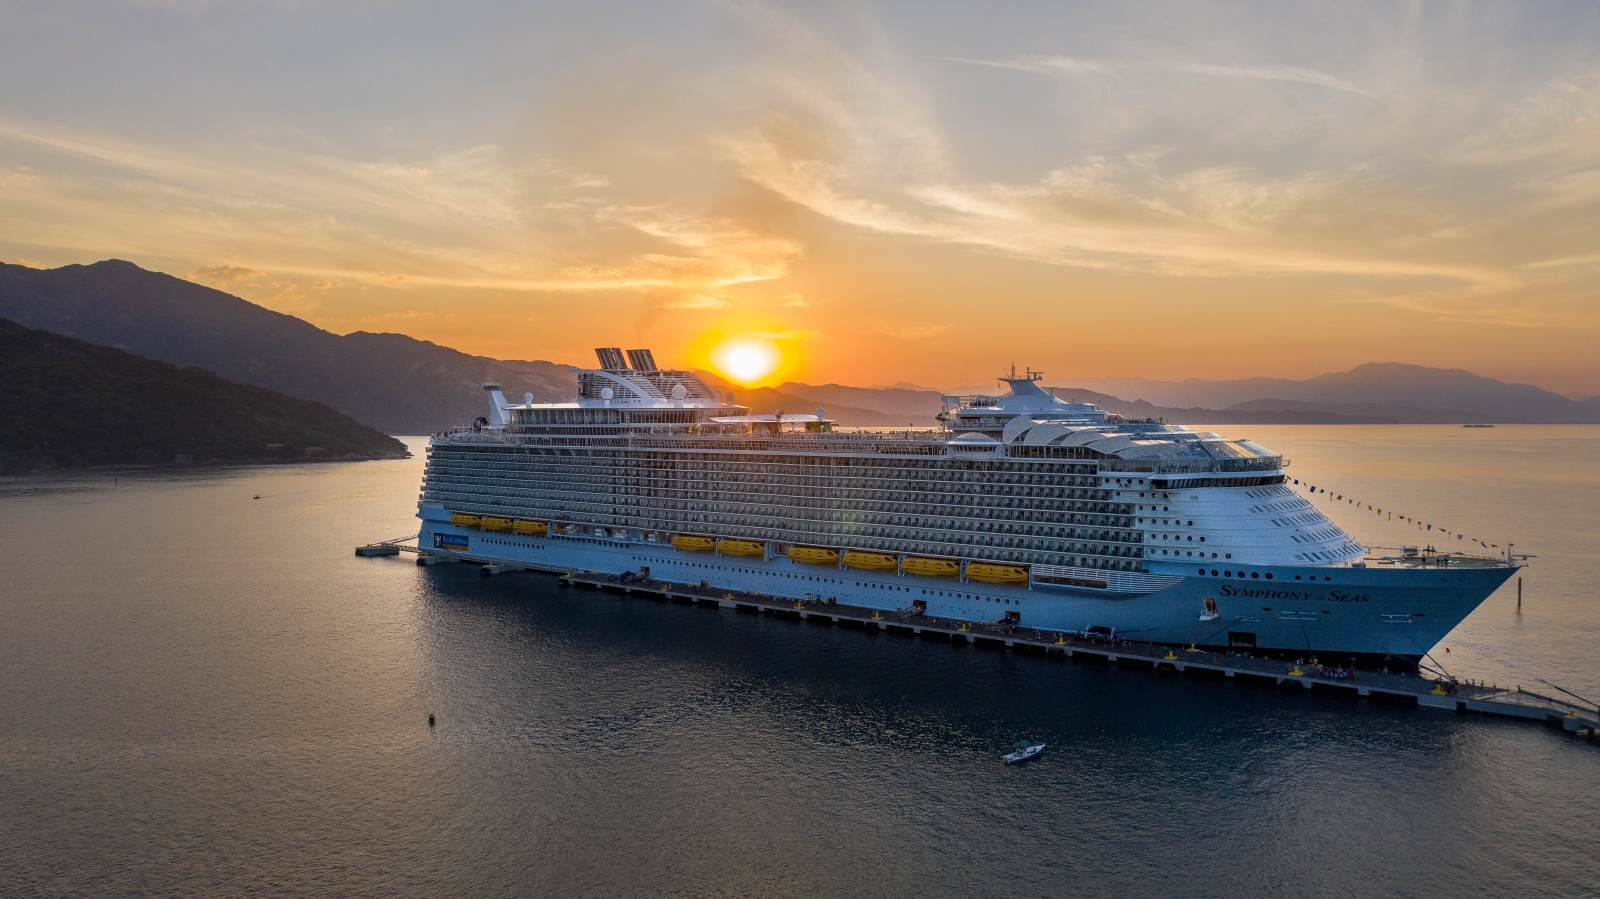 cruise ship going away in the sunset